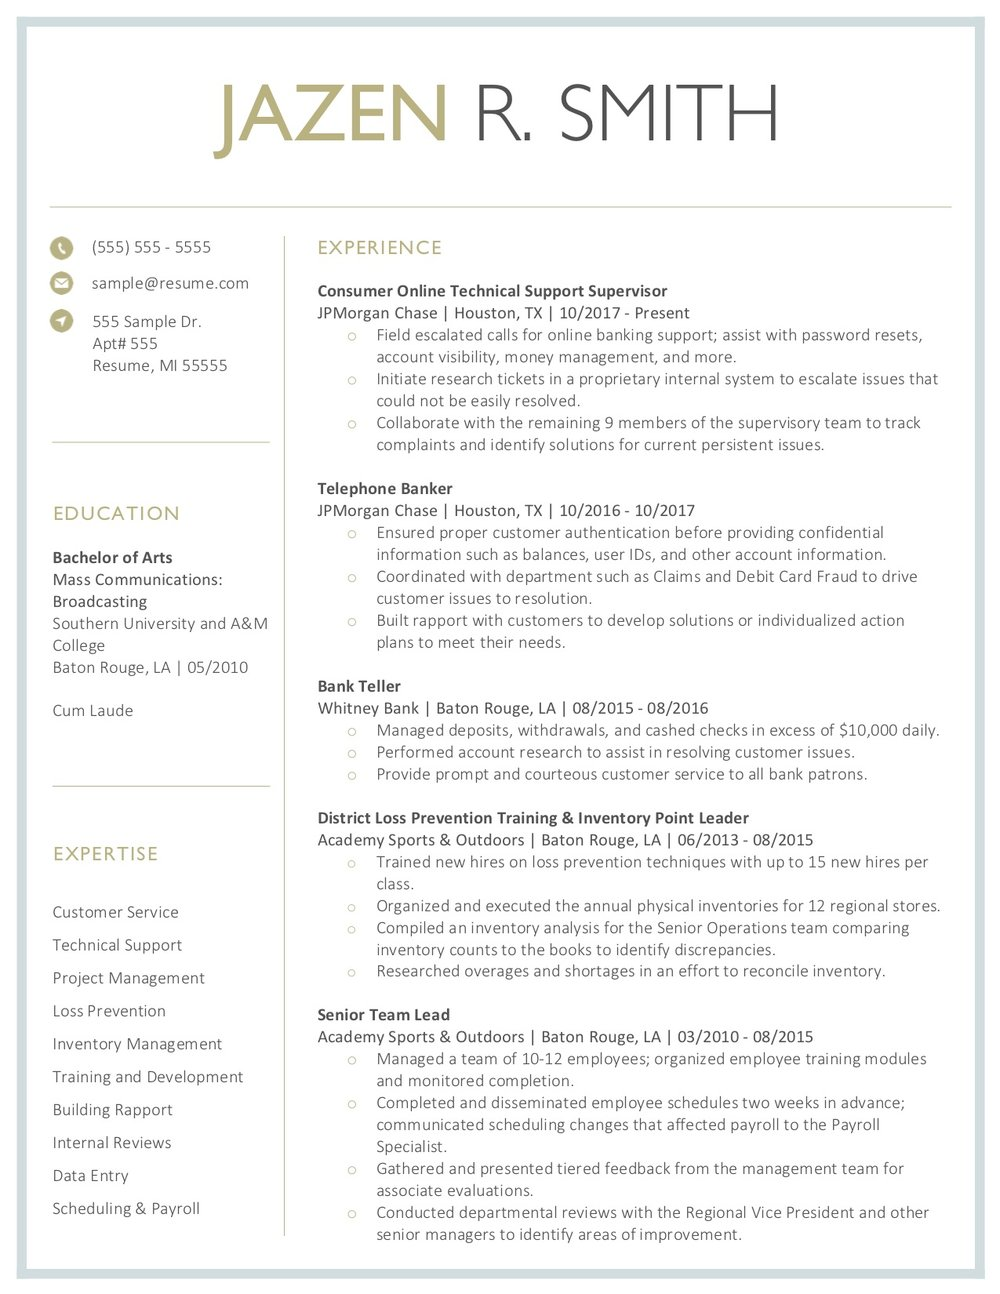 Client Resume #24. Click to enlarge.